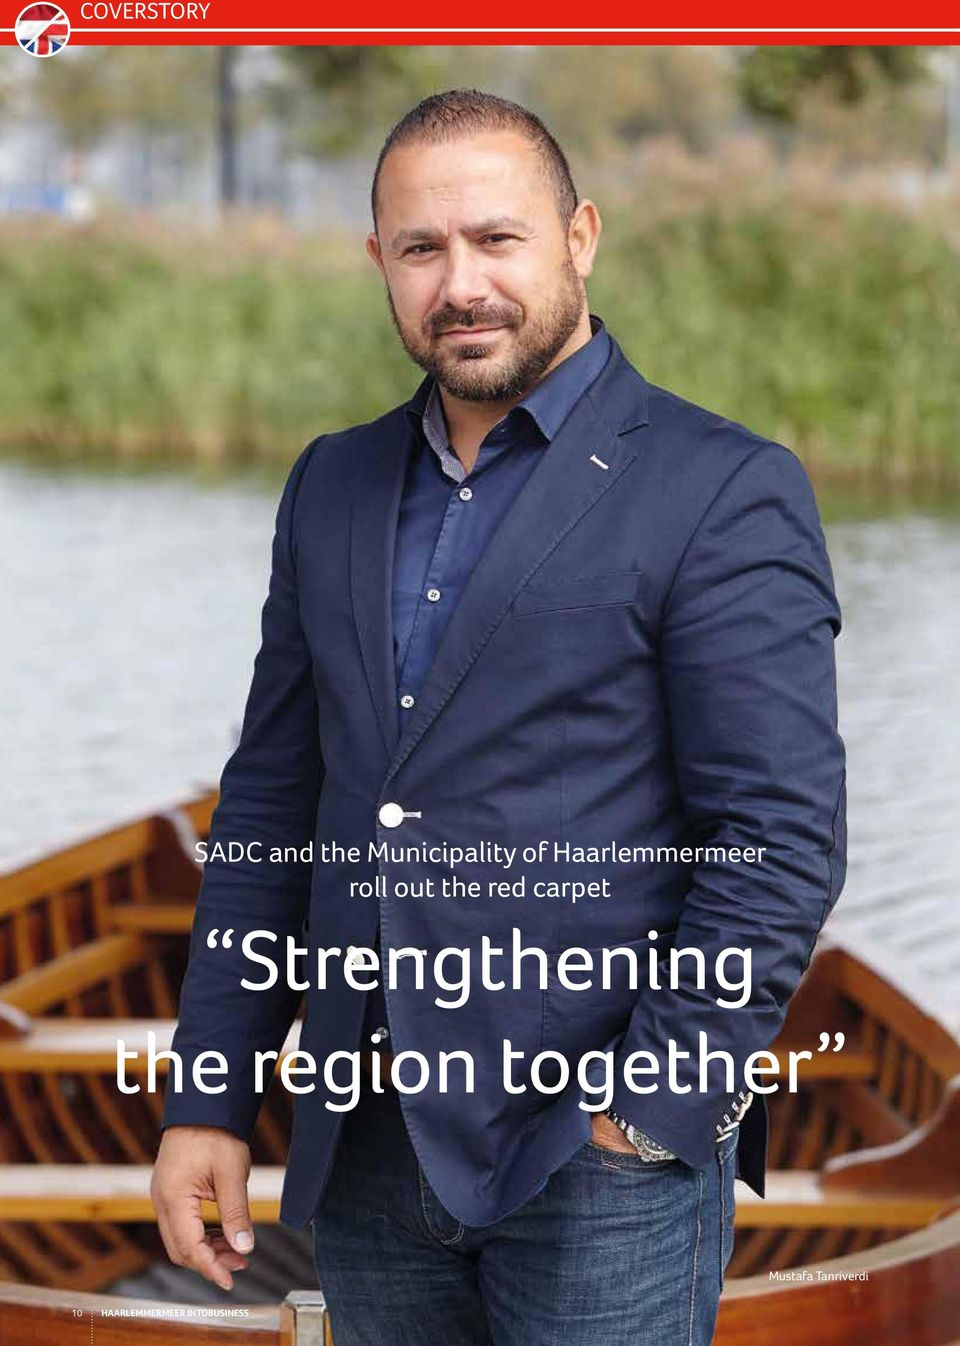 Strengthening the region together